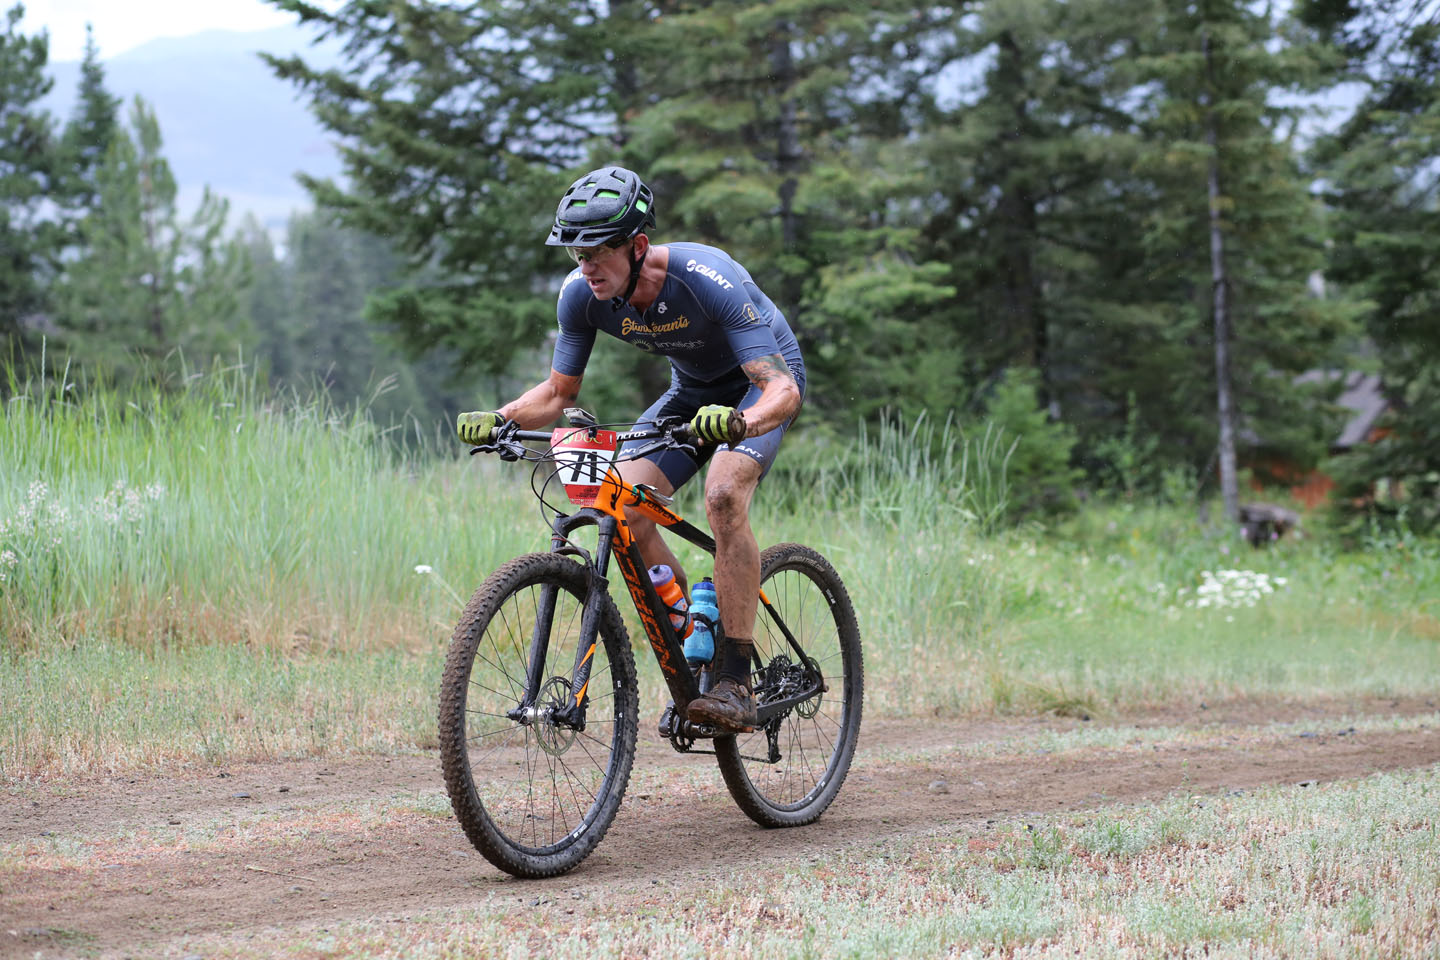 Eric Chizum took second place after fighting back from major first lap setback